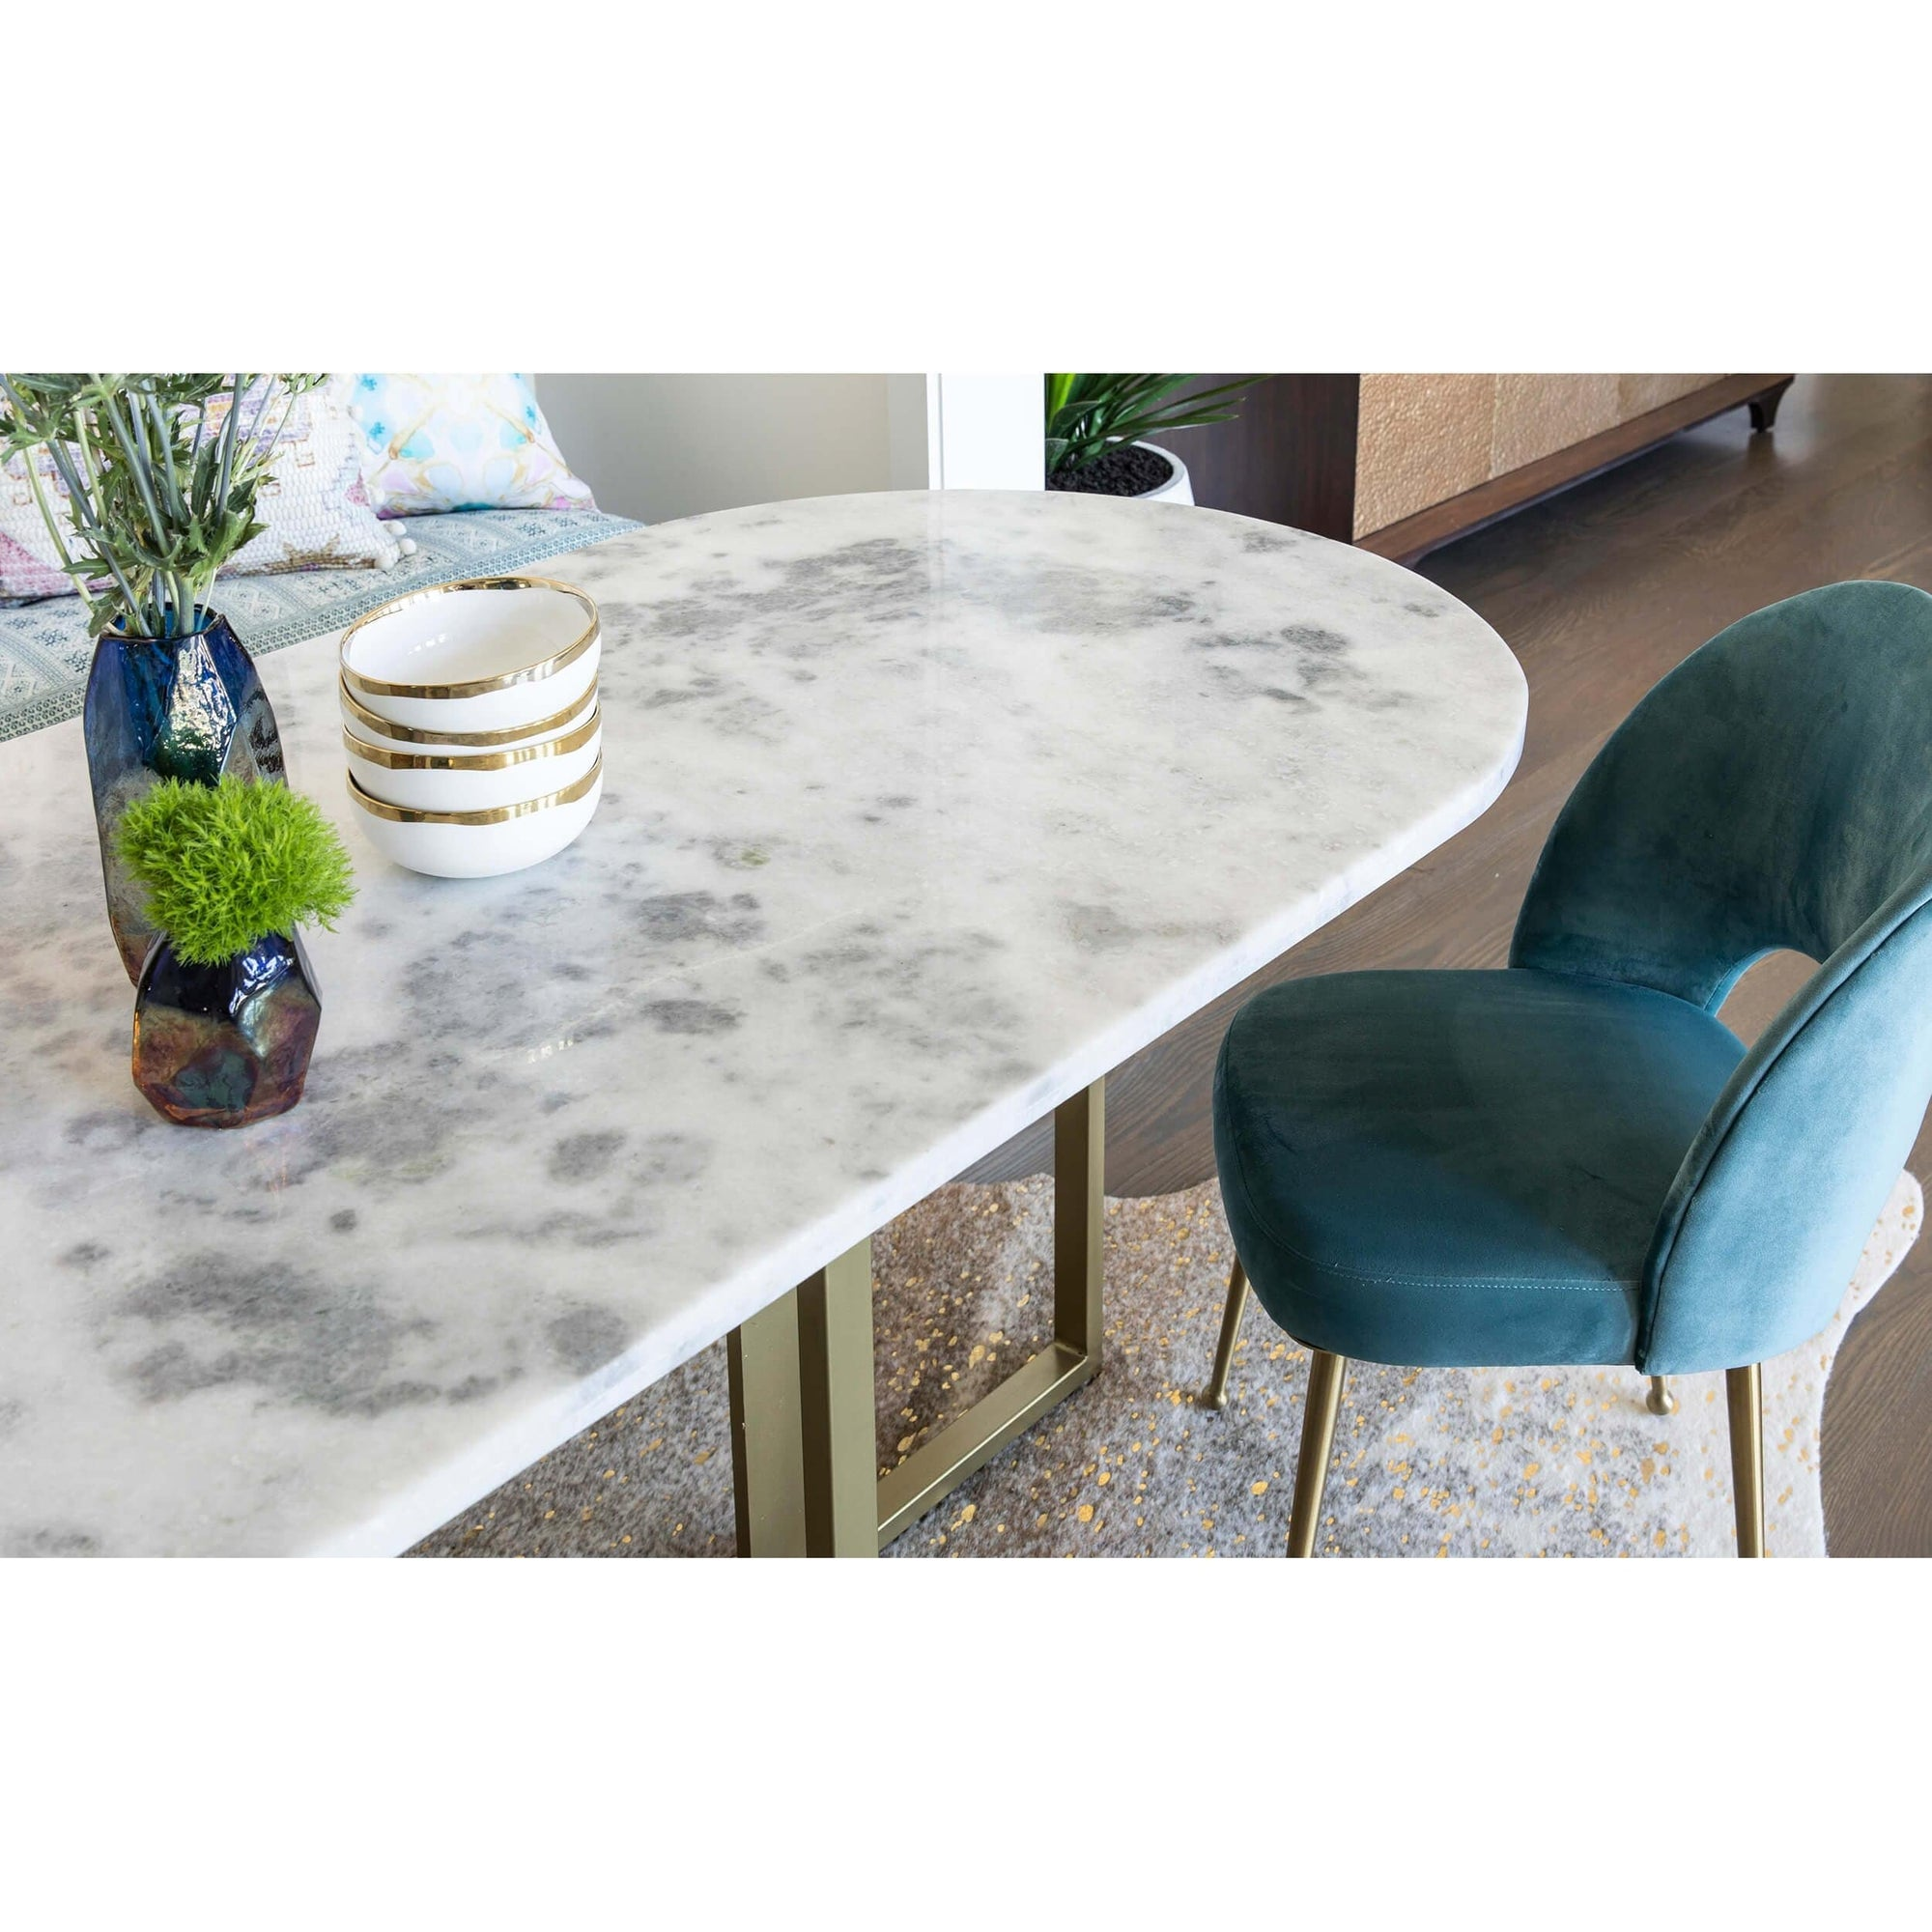 Strange Devan Oval Dining Table High Fashion Home Download Free Architecture Designs Grimeyleaguecom